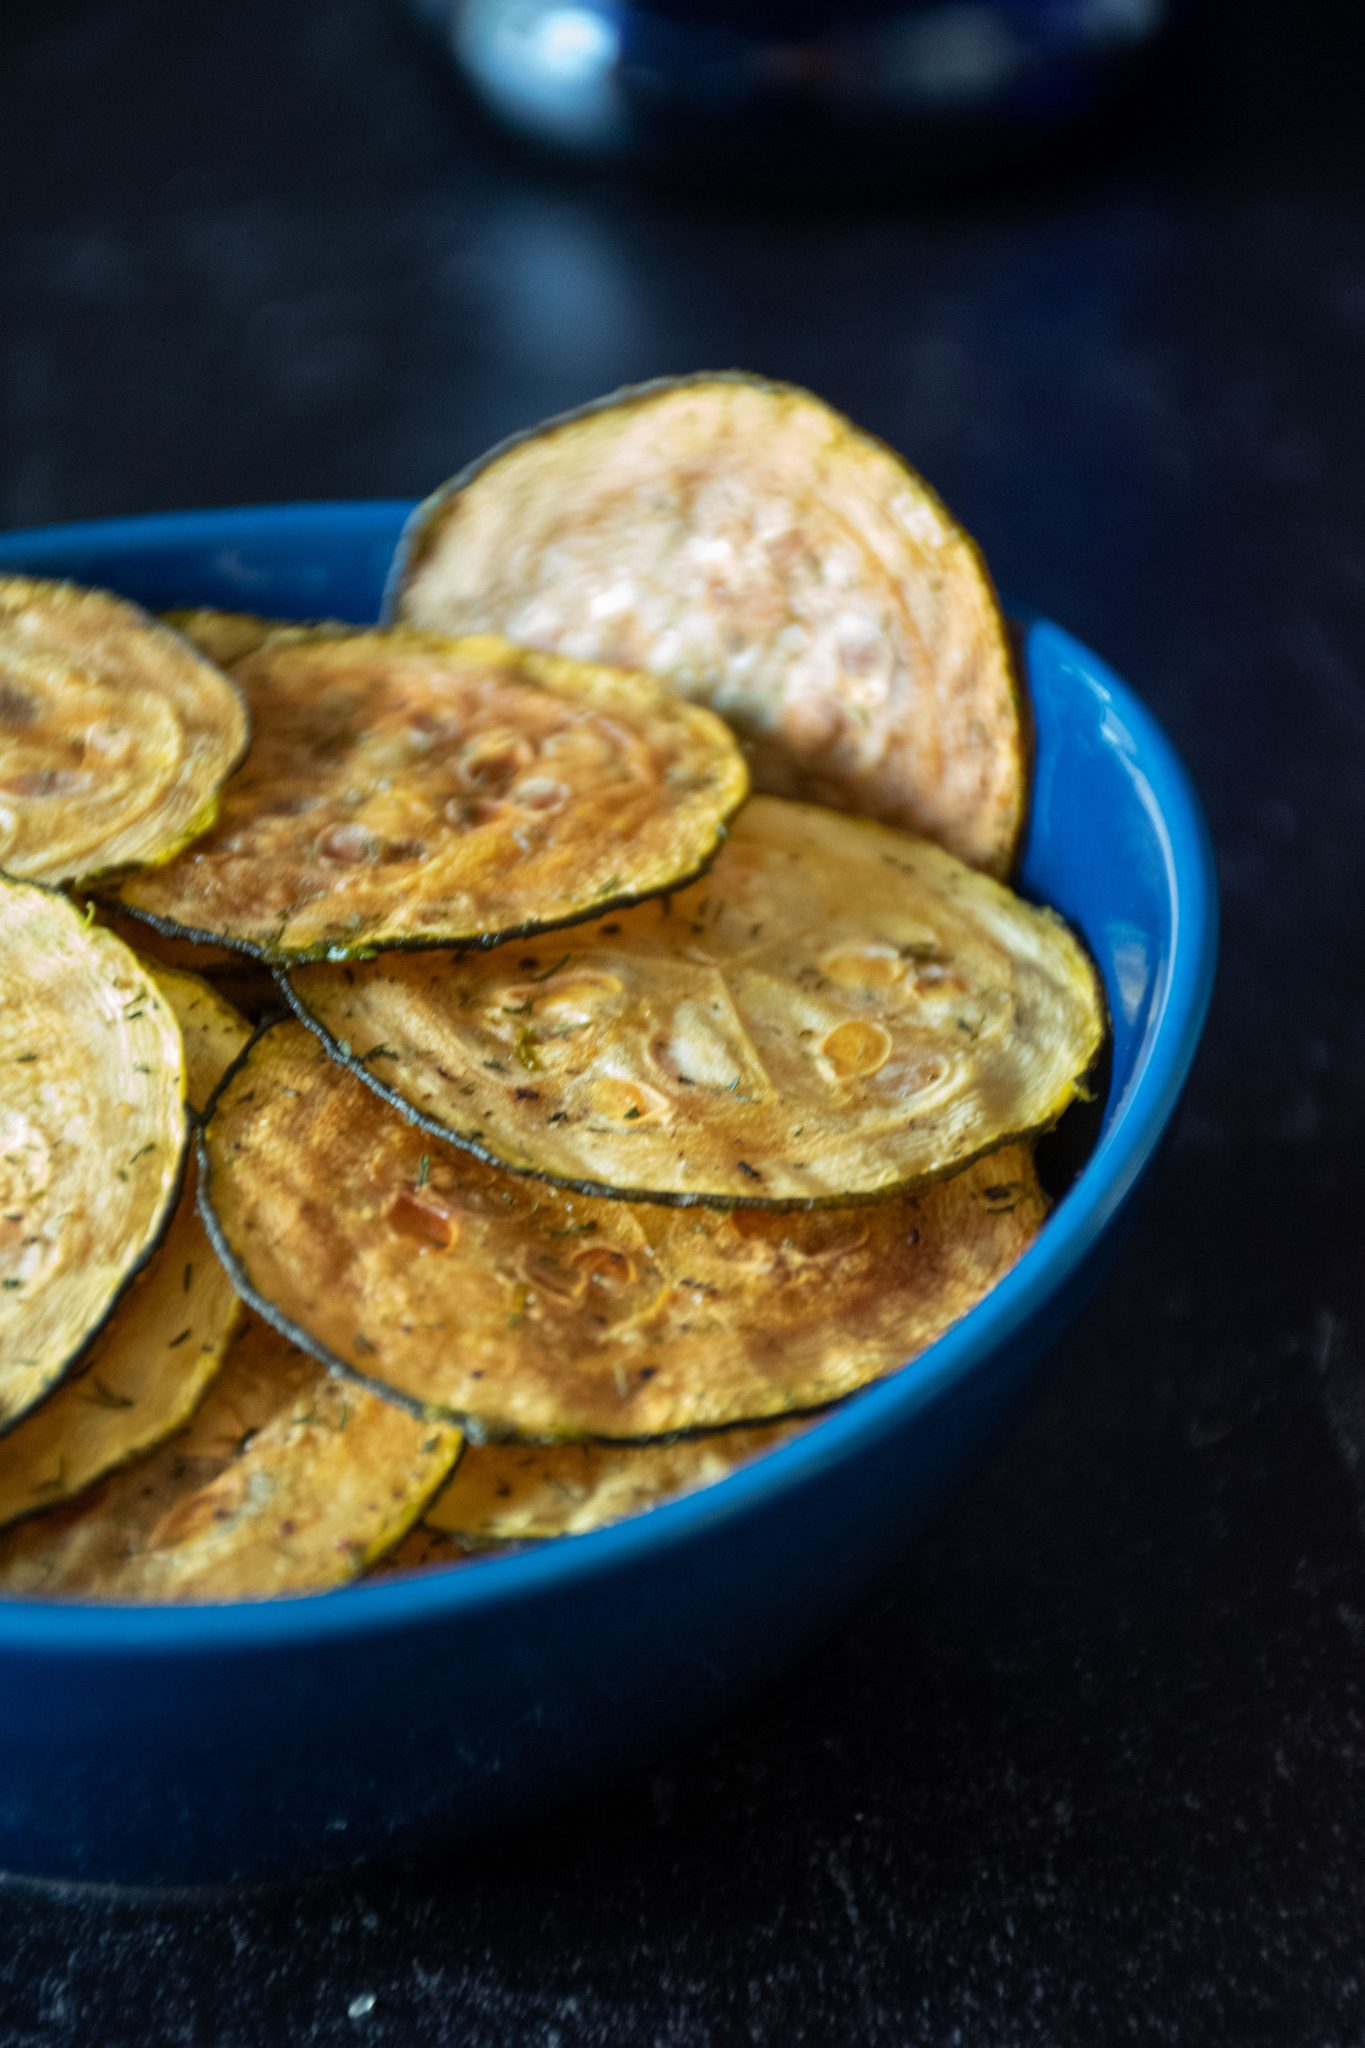 Zucchini chips in a blue bowl in front of dark background.